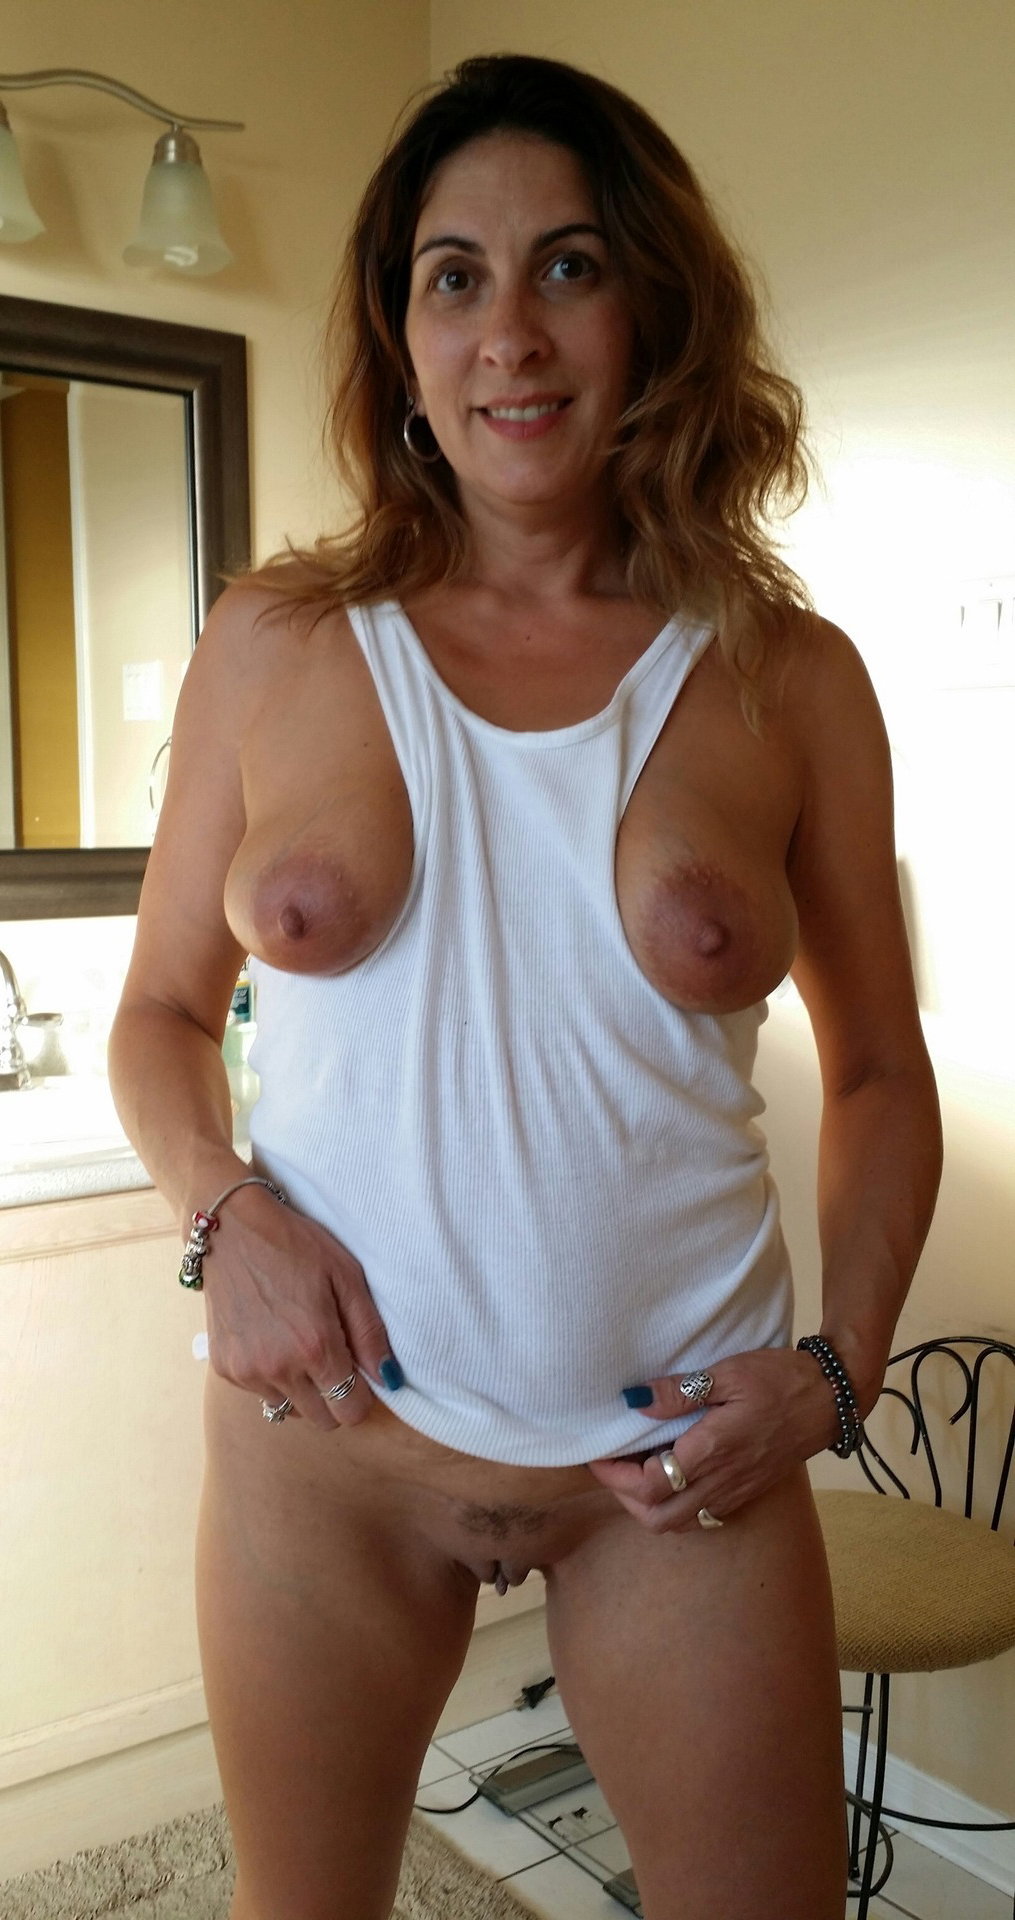 Something milfs mature pics of all clear, thank